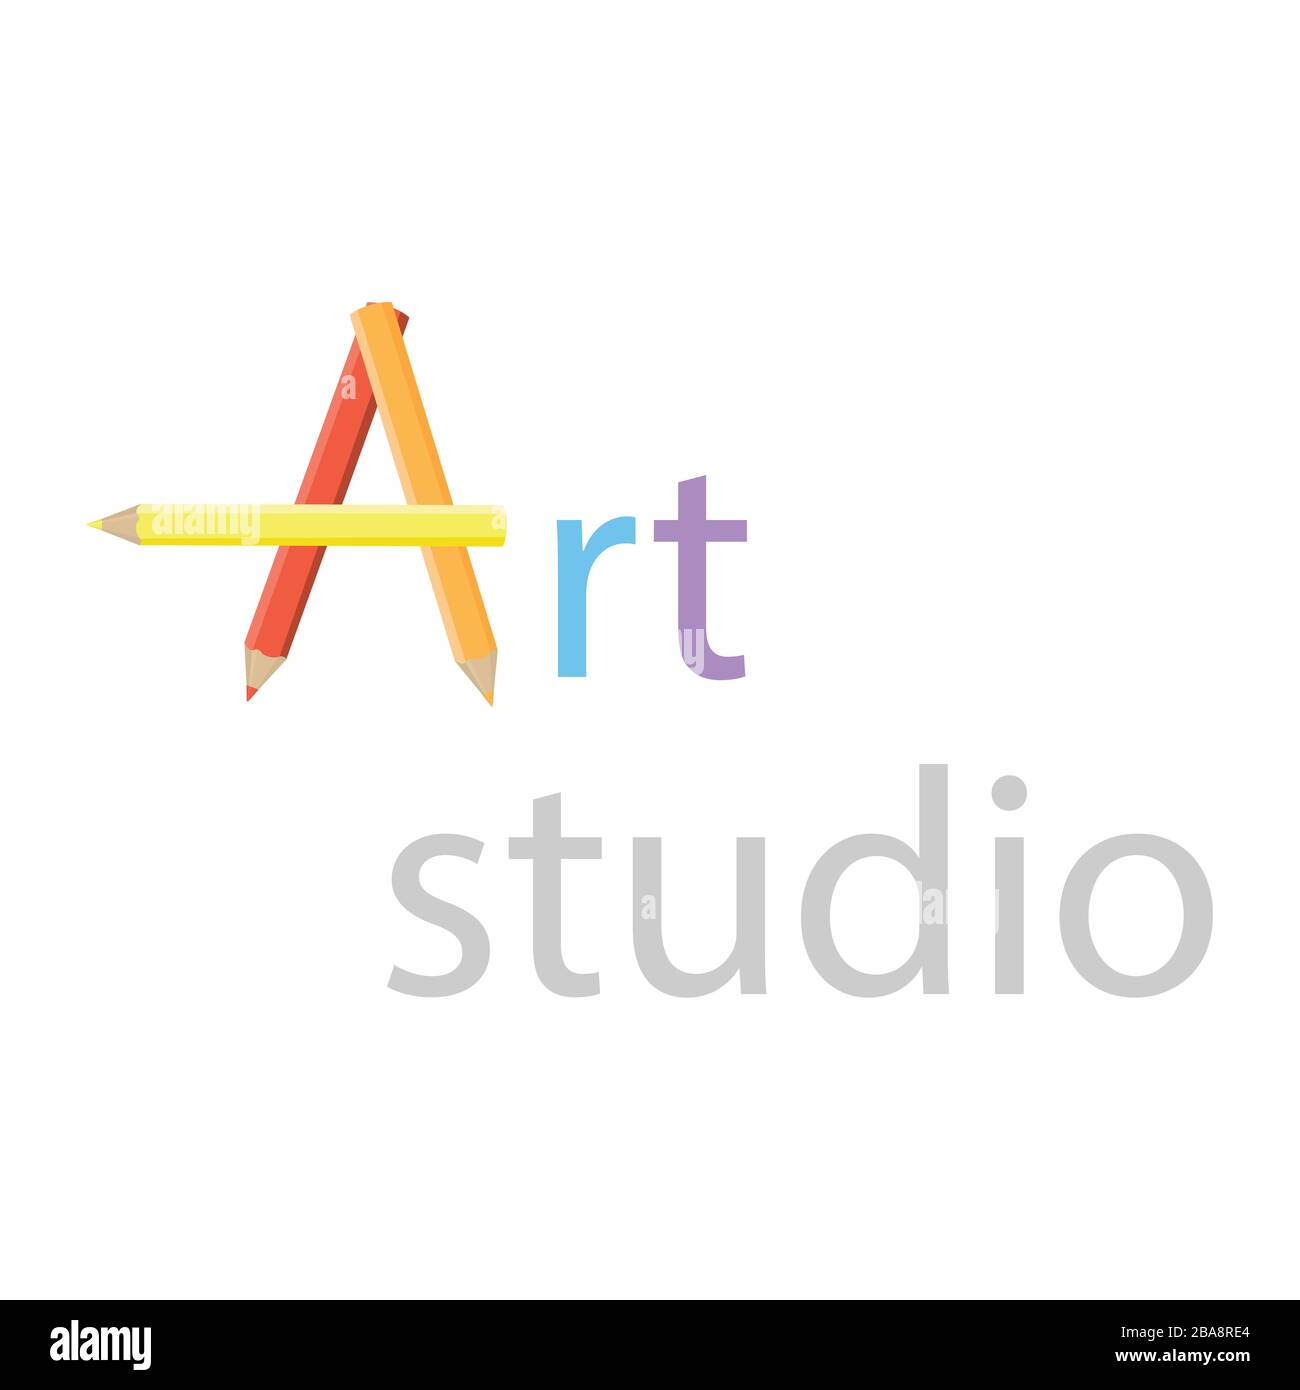 Art Studio Logo Design Element Vector Creative Workshop Stock Vector Image Art Alamy,Simple King And Queen Crown Tattoo Designs